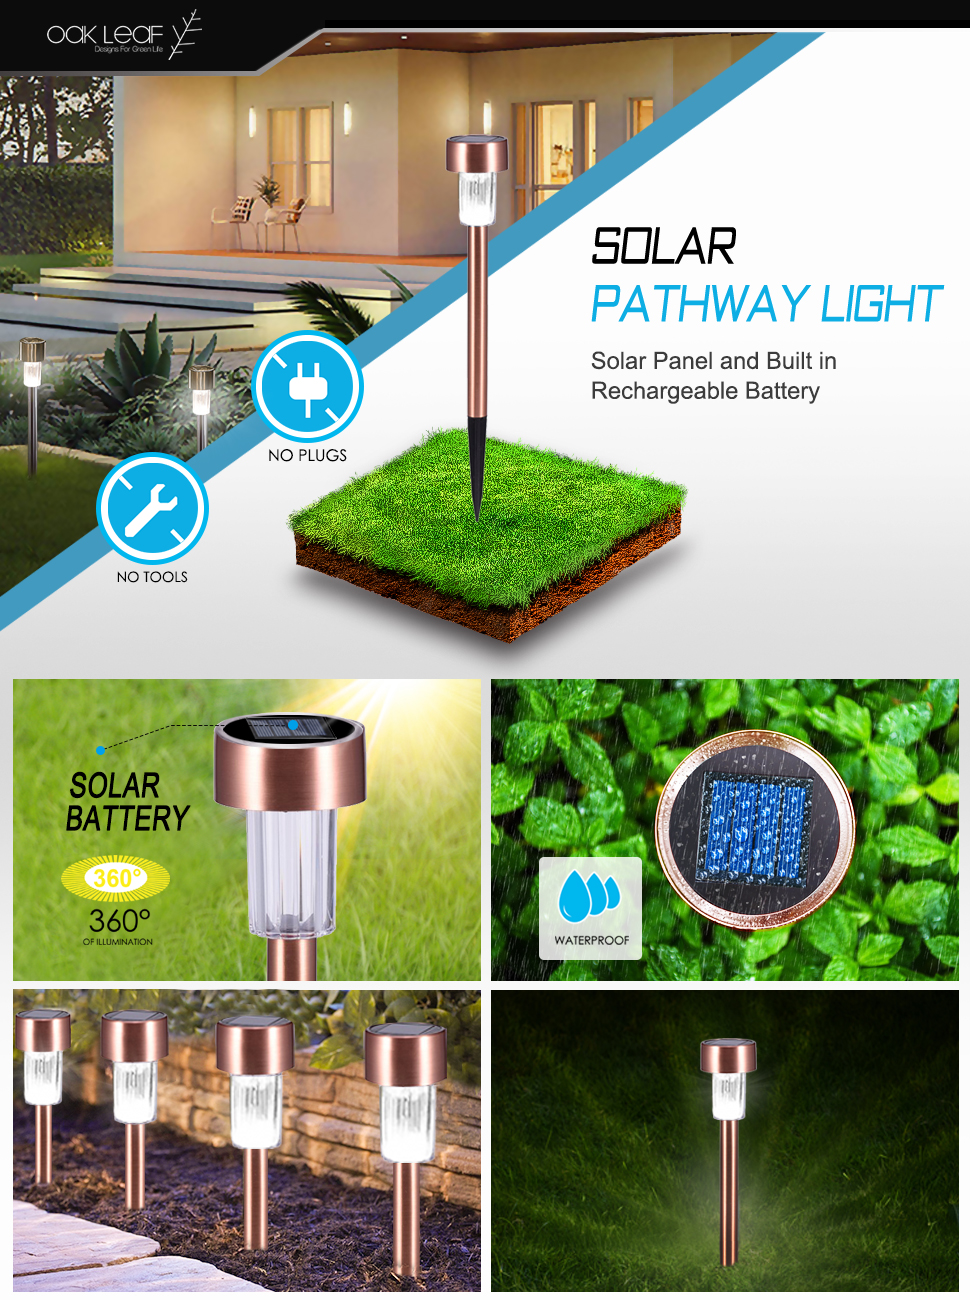 Solar Pathway Lights Oak Leaf Outdoor Led Landscape Sunny Light Gardensolar Yard Powered Lighting Looking For A Low Voltage Path Better Make It Then You Got This Charges During Daytime And